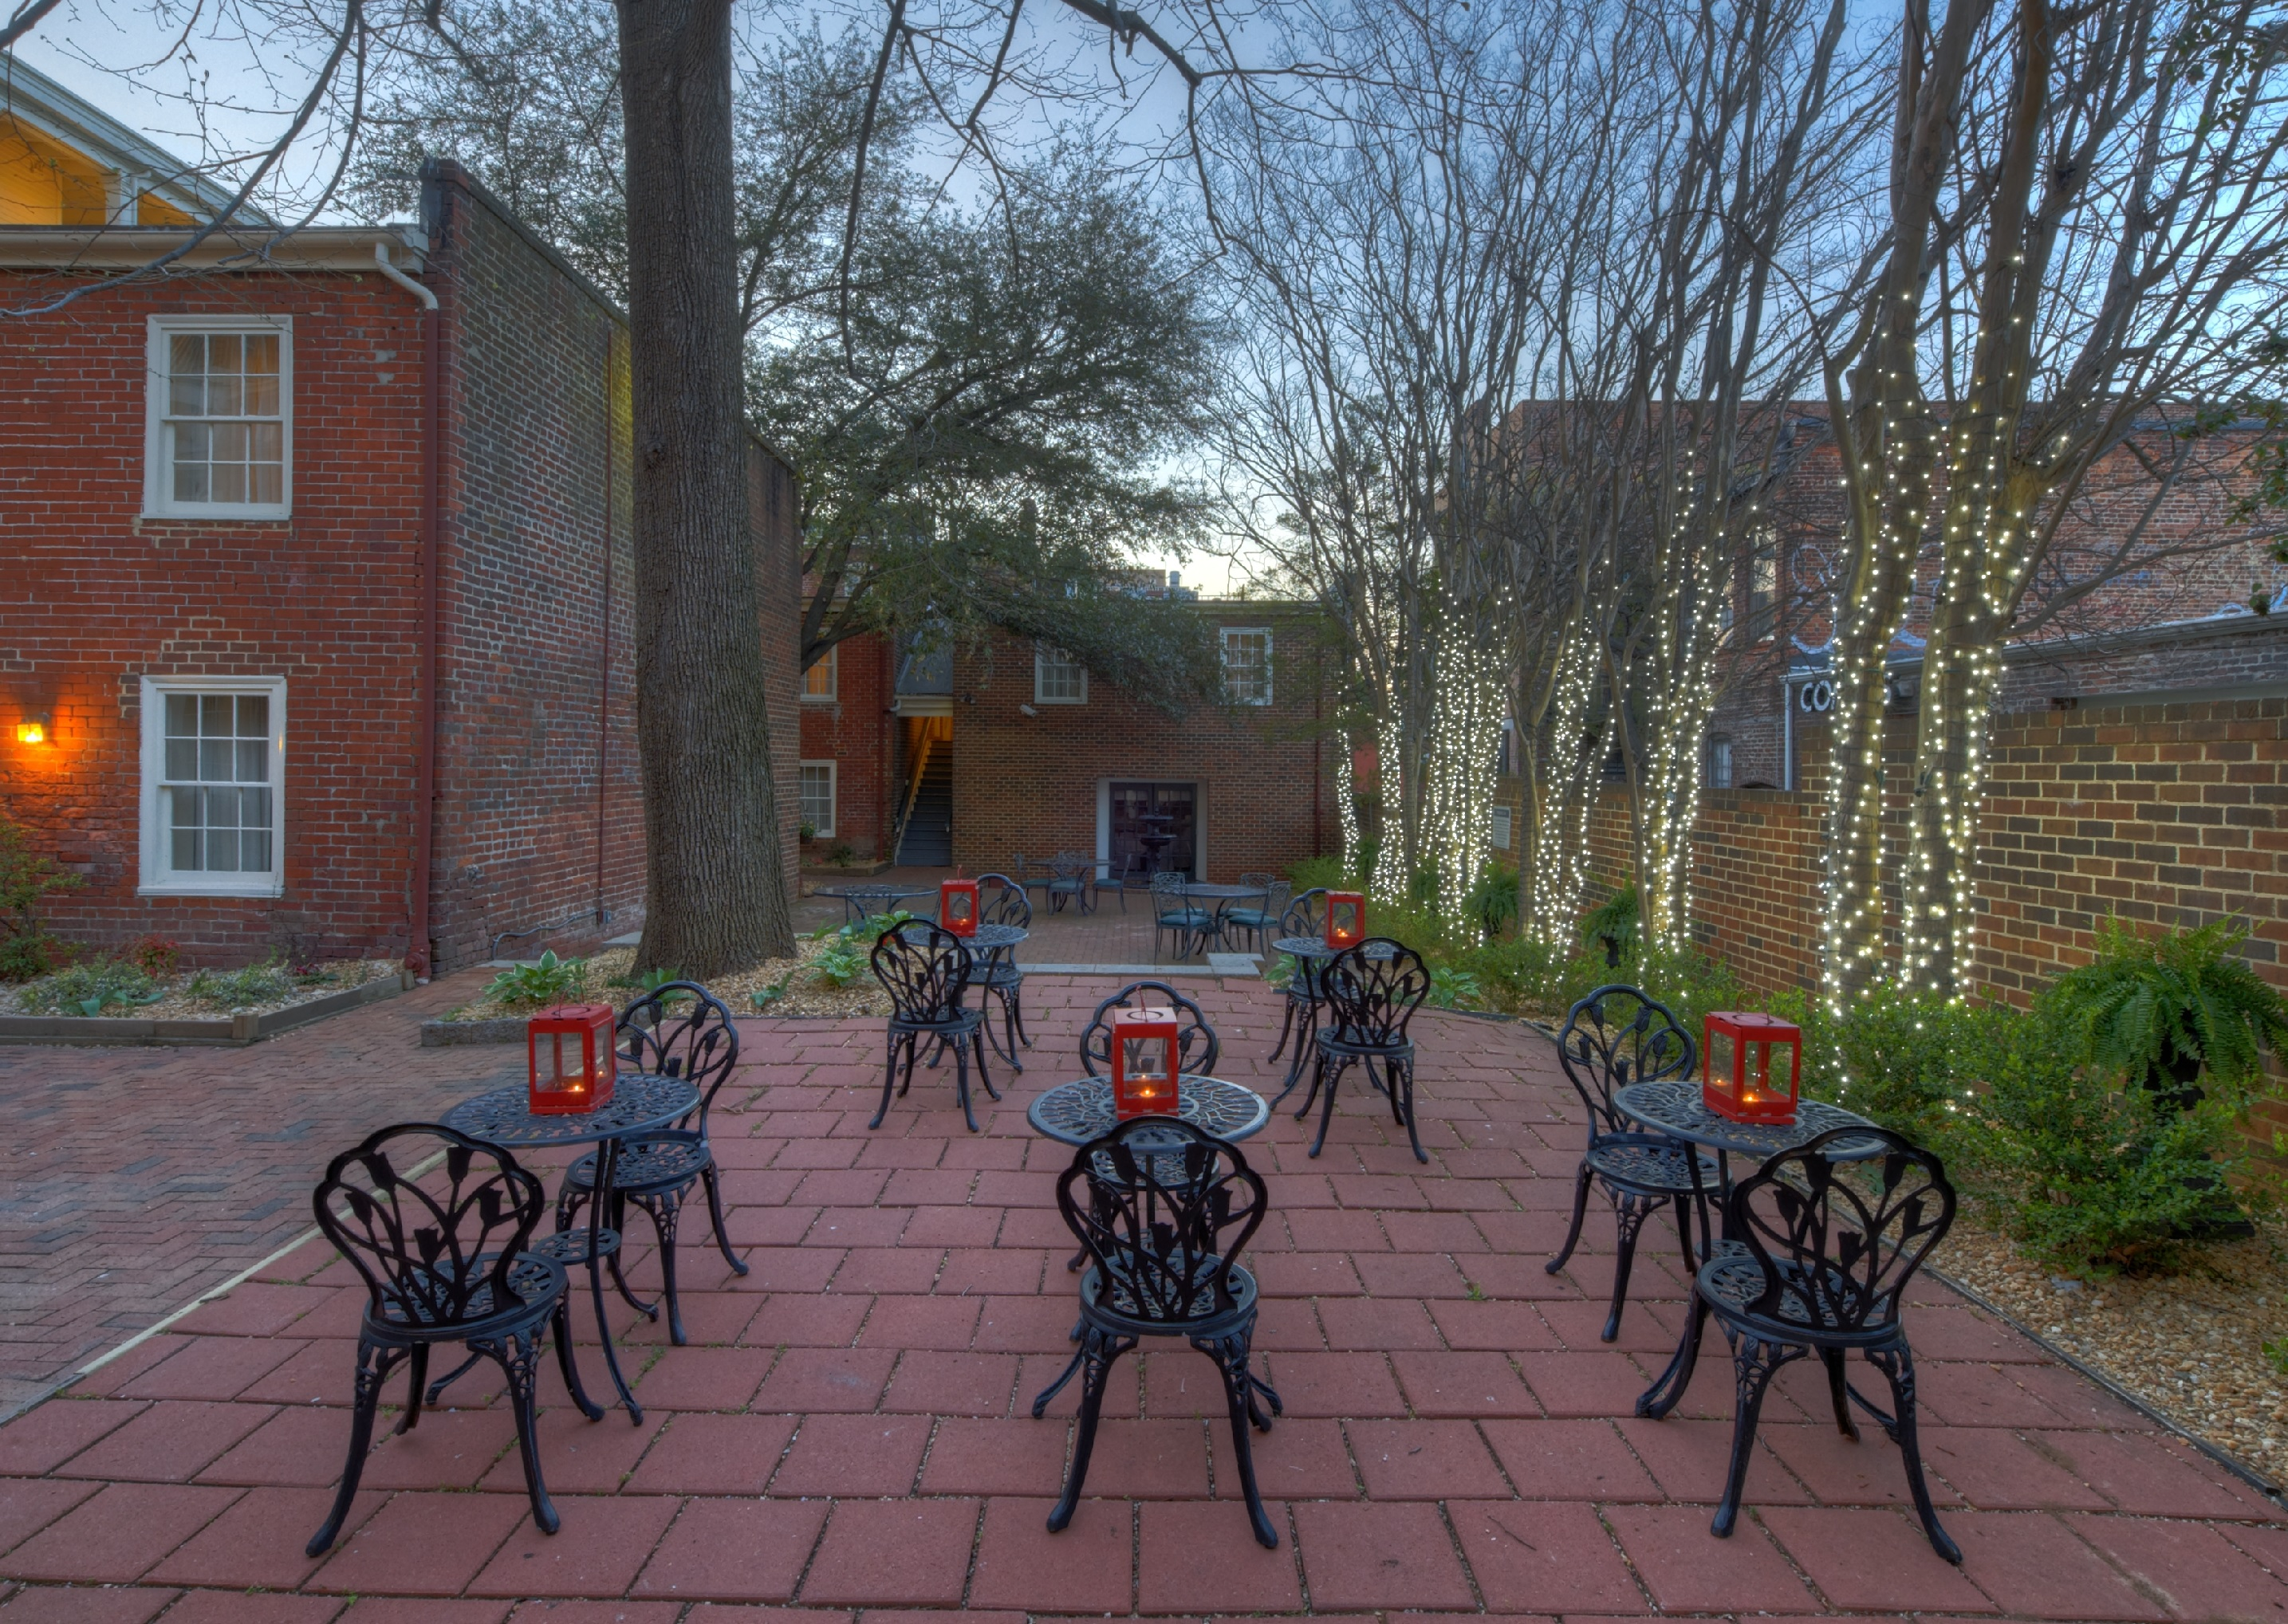 https://www.hotelsbyday.com/_data/default-hotel_image/4/21877/courtyard-chairs-cropped.jpg